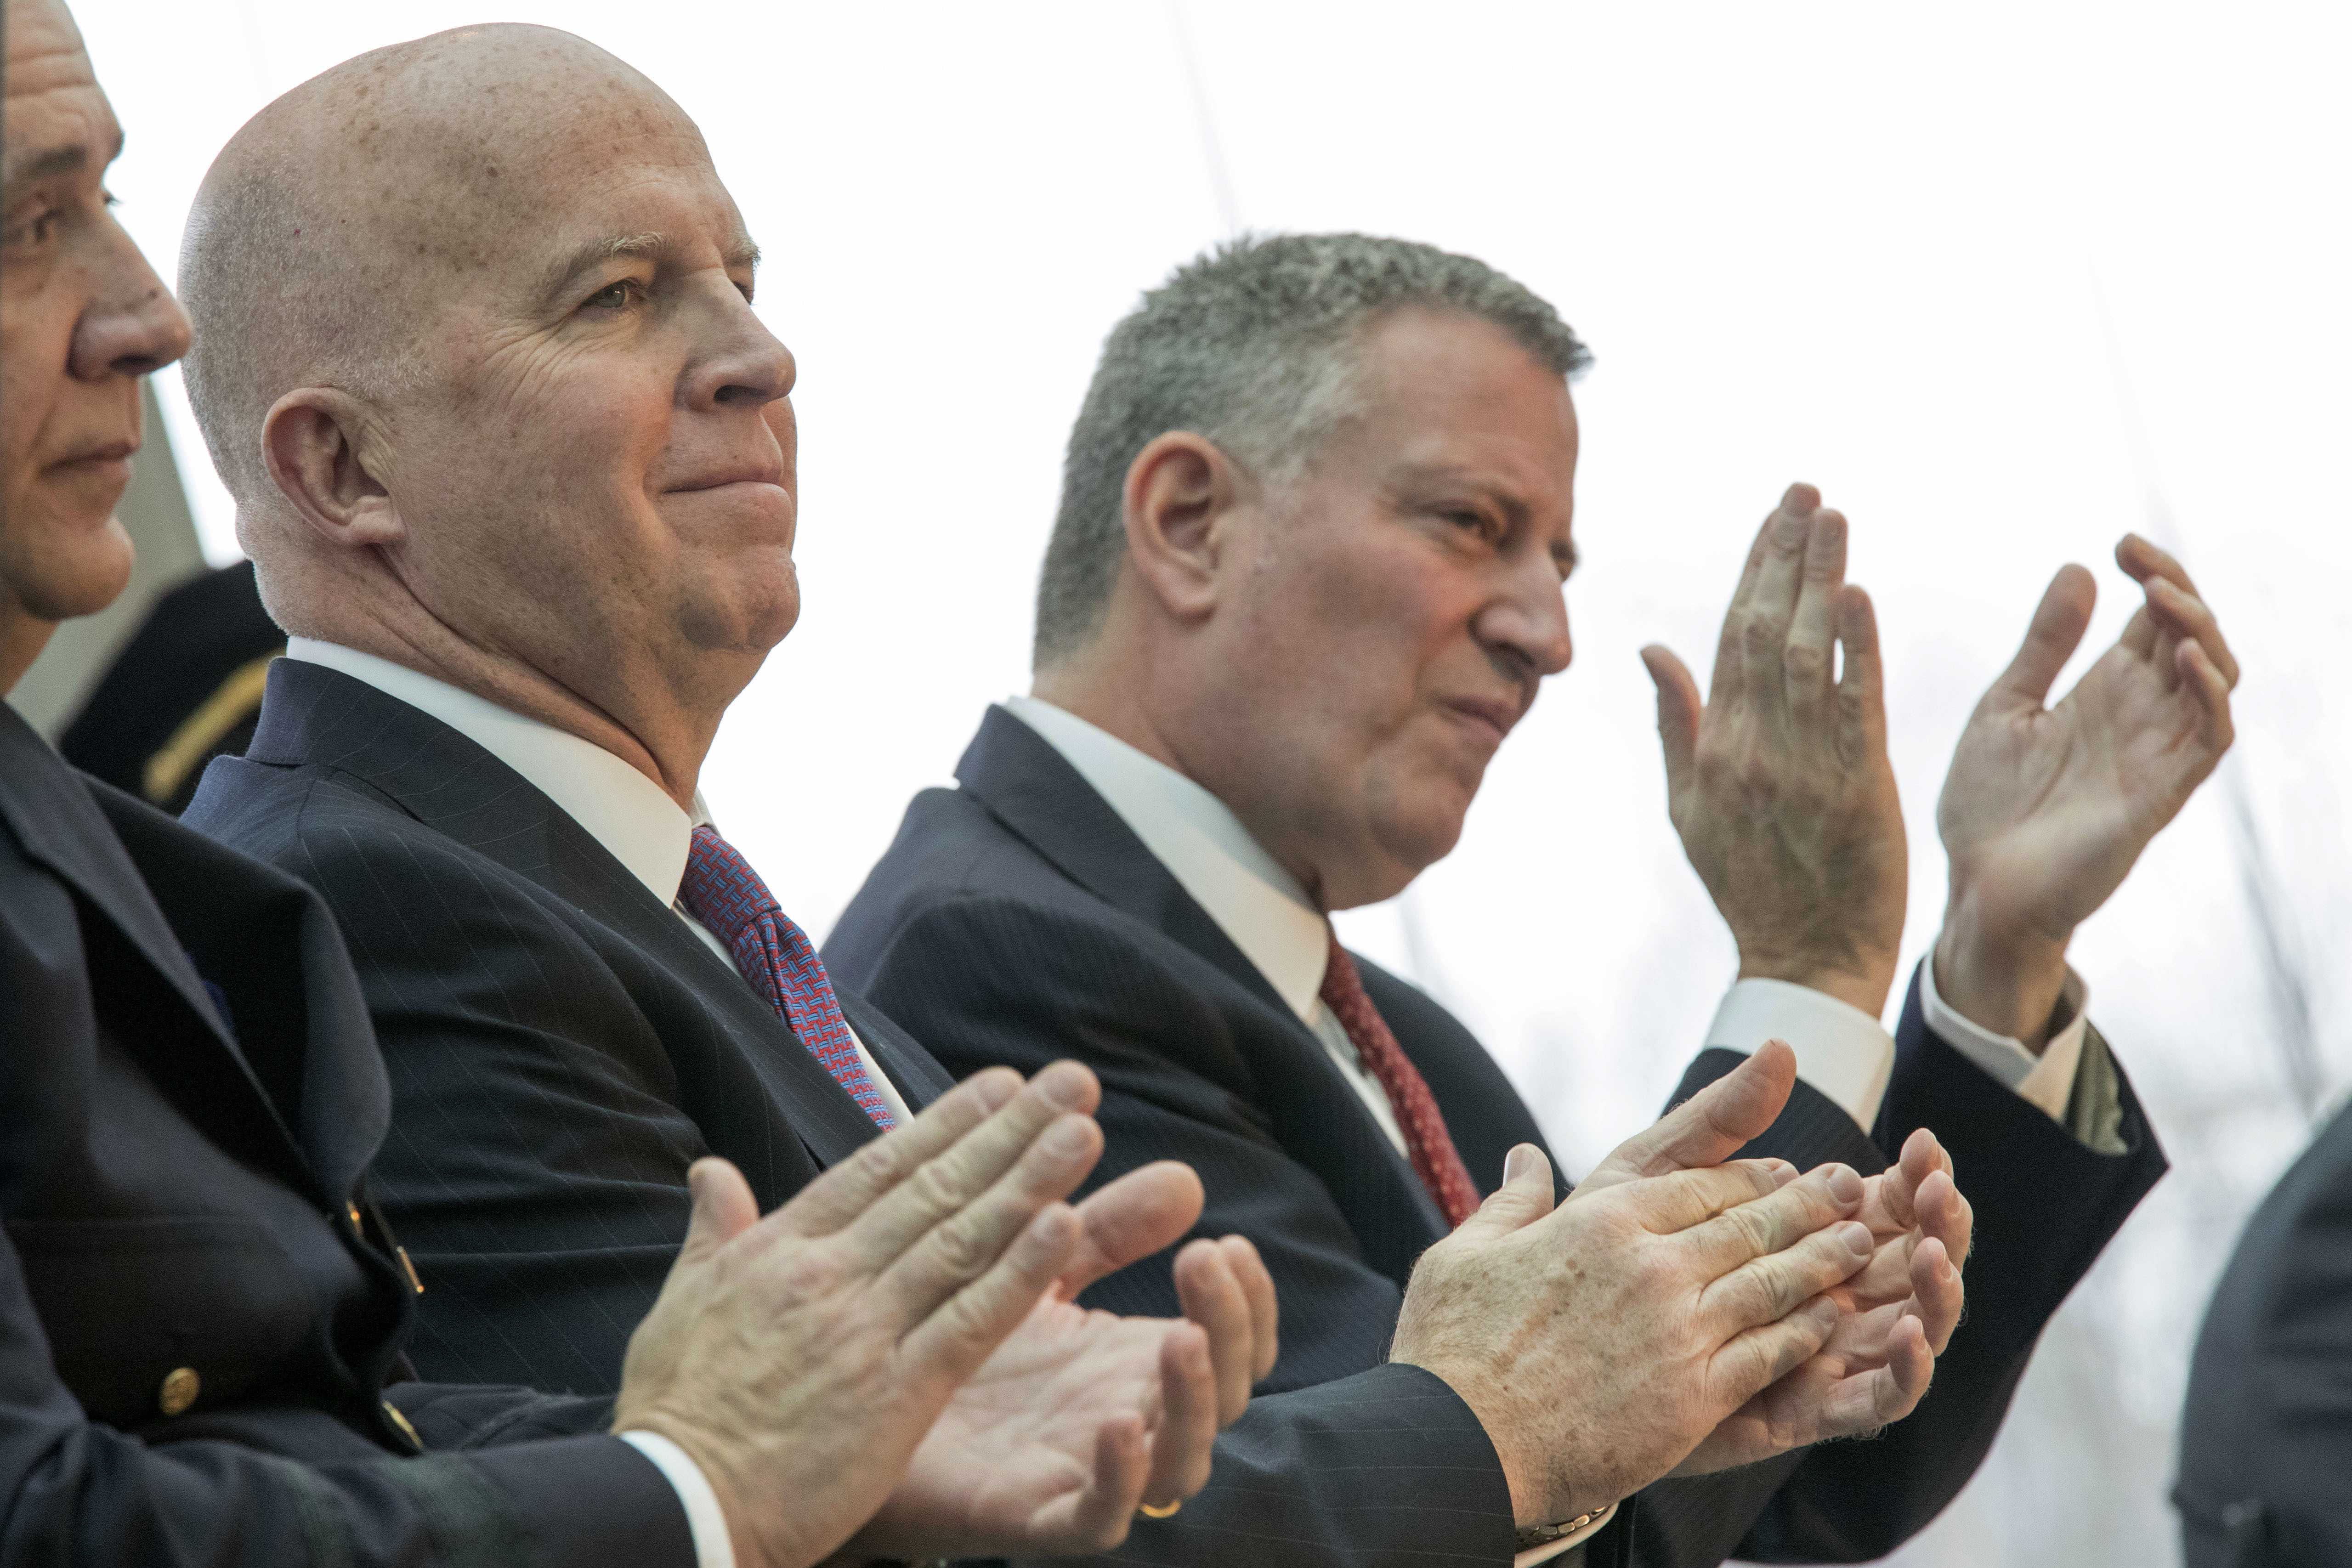 New York City Mayor Bill de Blasio (R) and NYPD Commissioner Jim O'Neil appear at a news conference in New York, in this file photo. (AP Photo/Mary Altaffer)